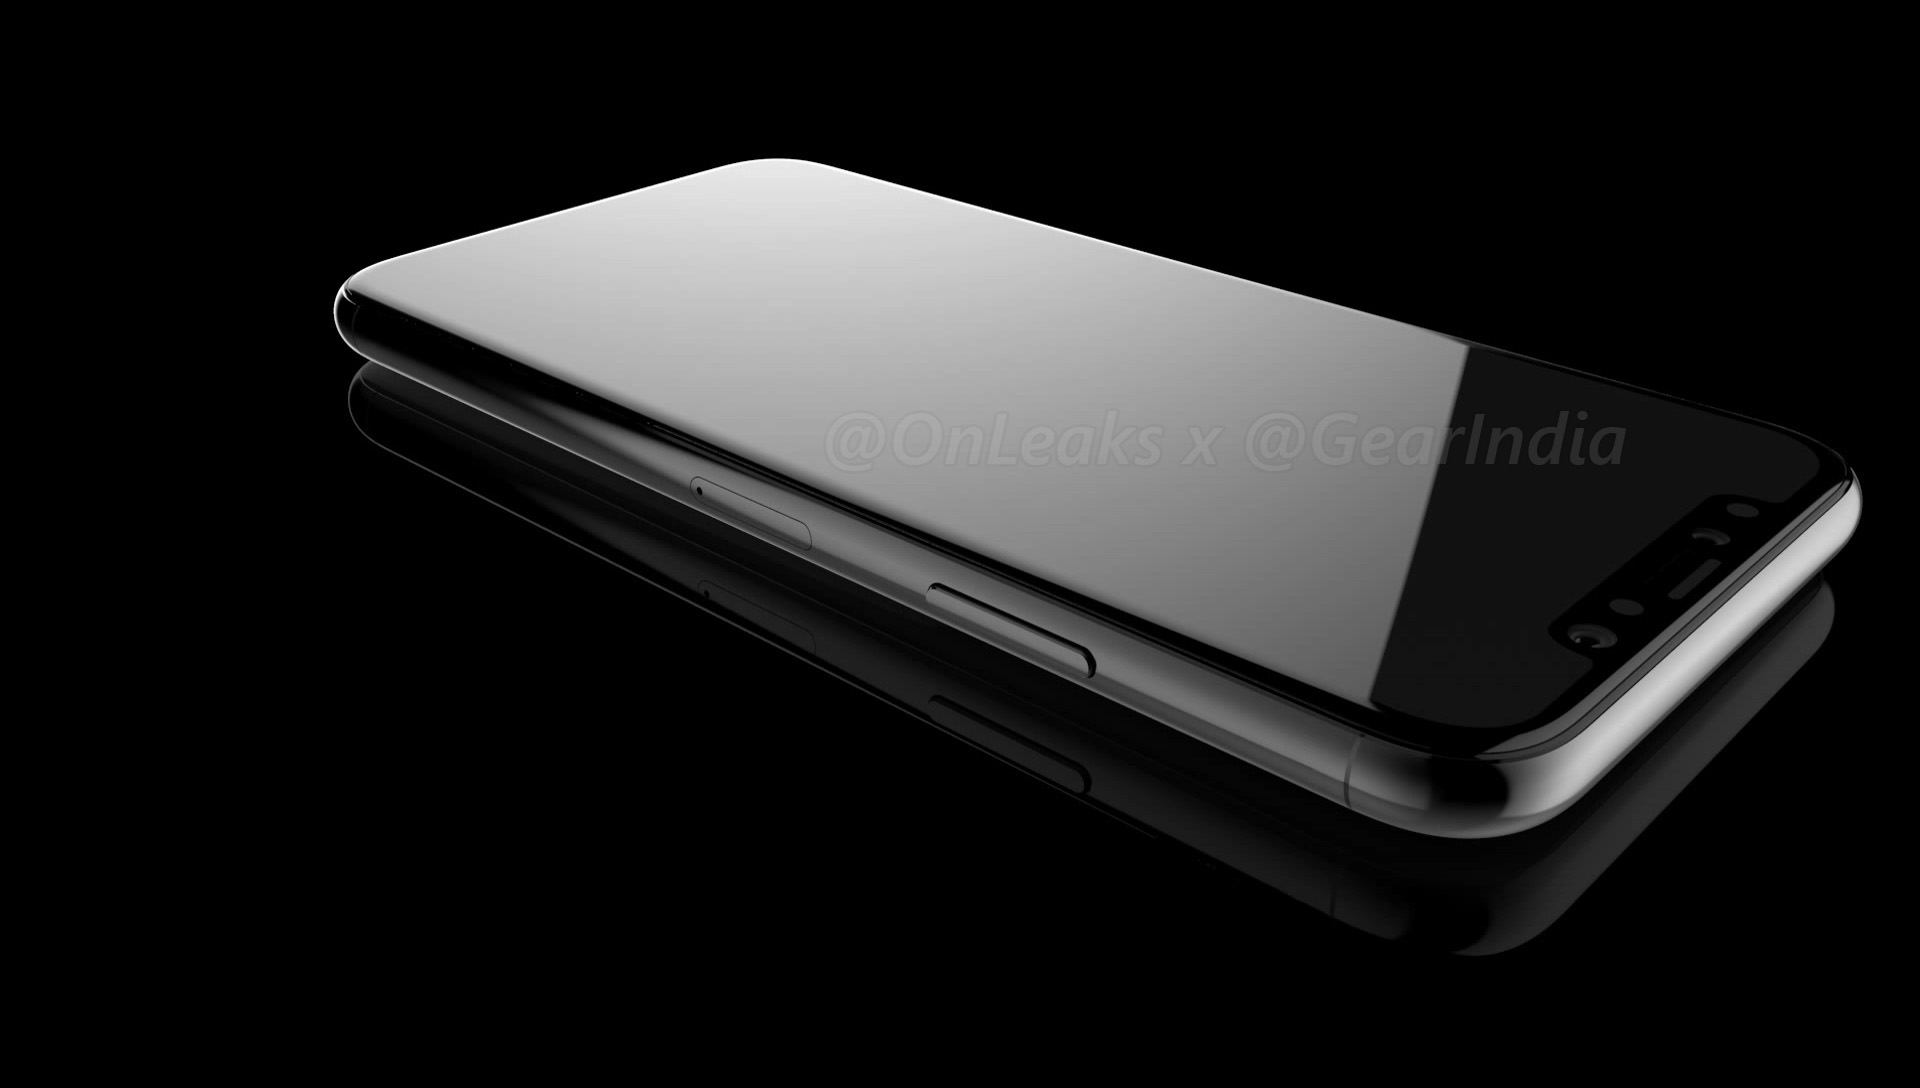 Rumor: IPhone 8 To Ship In November, No Touch ID In